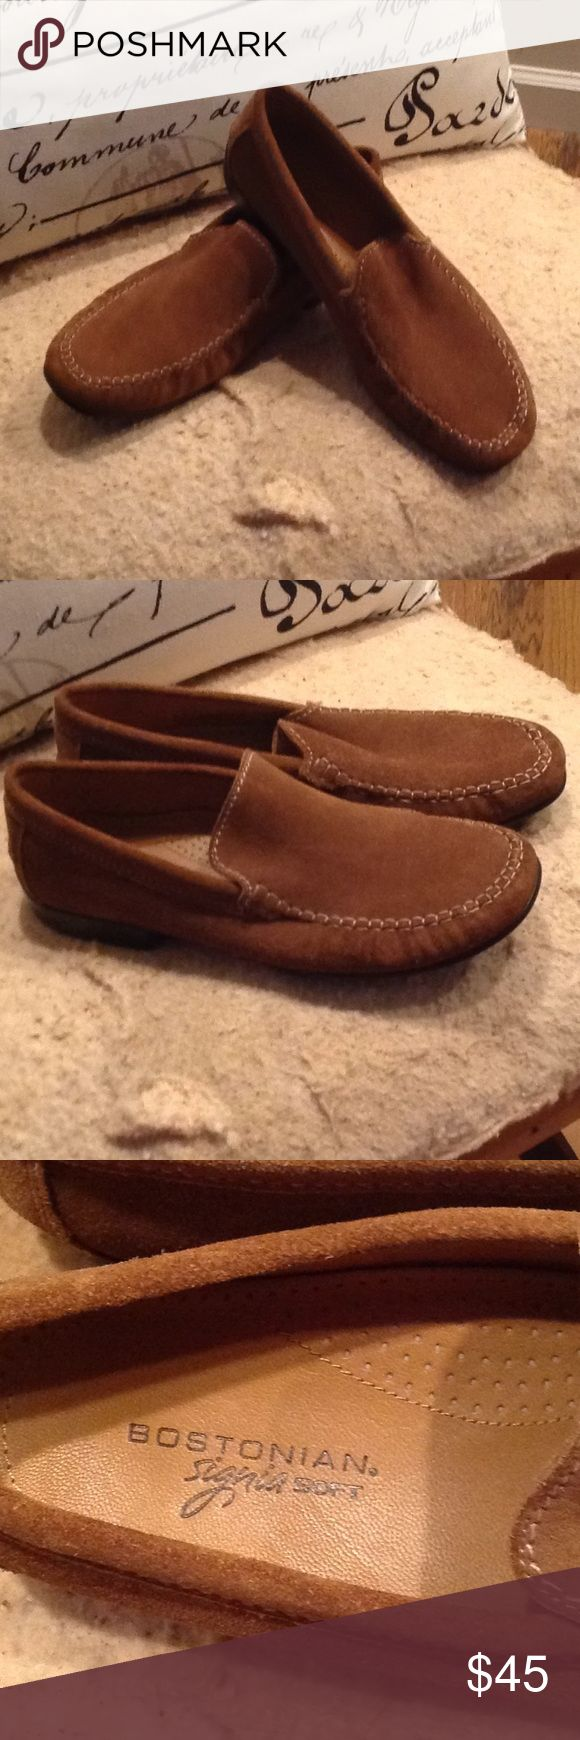 MEN BROWN BOSTONIAN SIGNIA SOFT LOAFER. SUEDE EUC👍 MENS BROWN SUEDE LEATHER BOSTONIAN SIGNIA SOFT LOAFER. YOU WILL THINK THEY ARE BRAND NEW👍👍👍 SIZE 10 1/2 w Bostonian Shoes Loafers & Slip-Ons